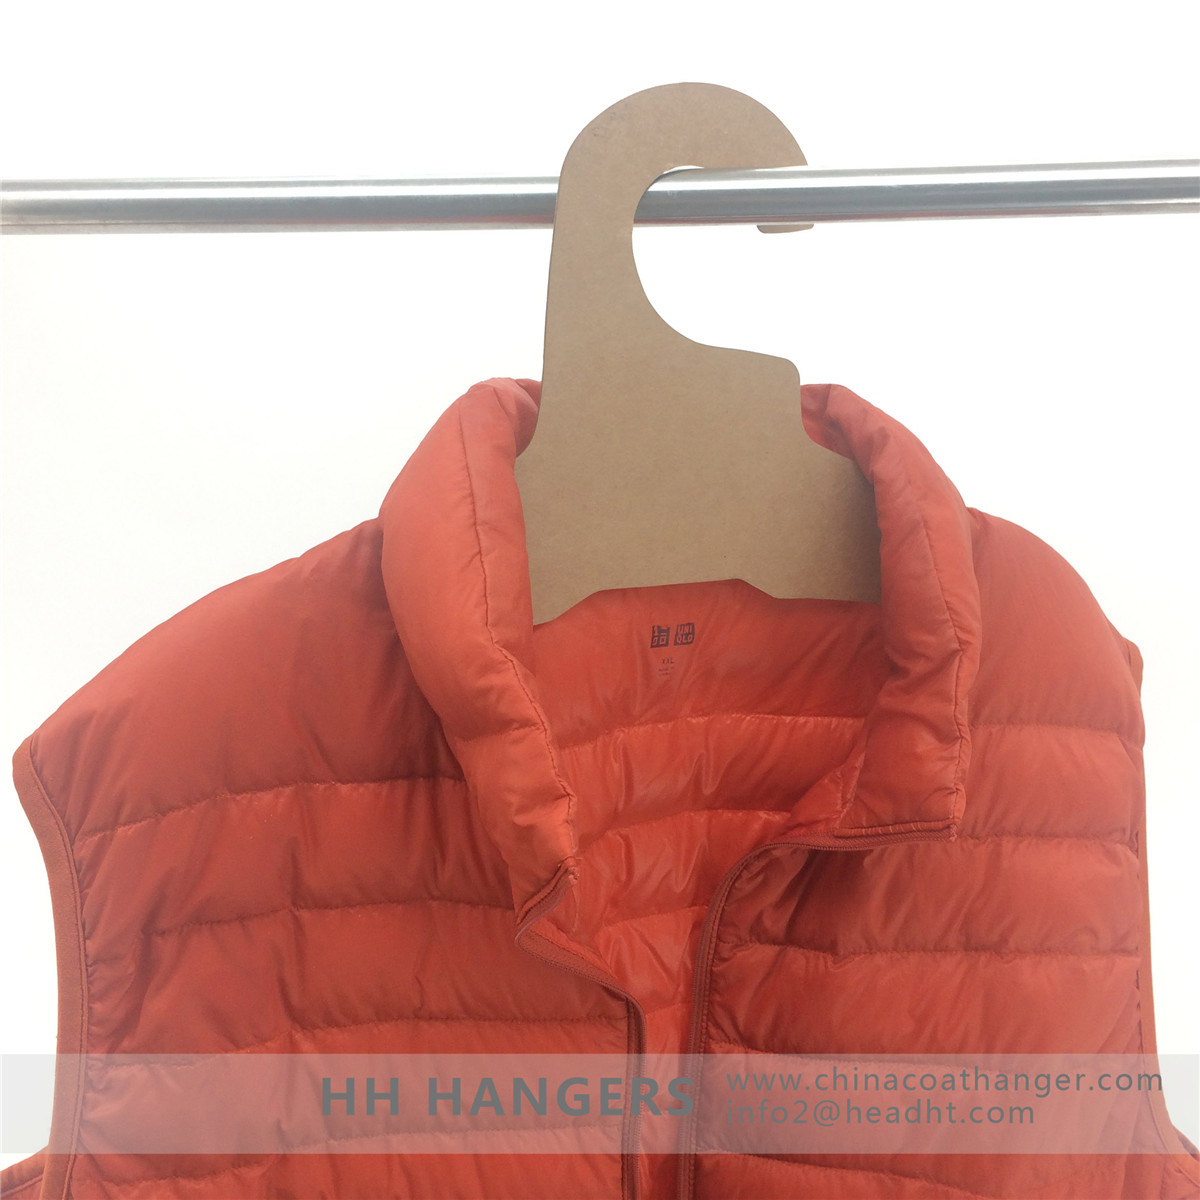 Strong Recycled Cardboard Clothes Hangers Paper Eco Friendly Fsc Hanger Hangers for Jeans